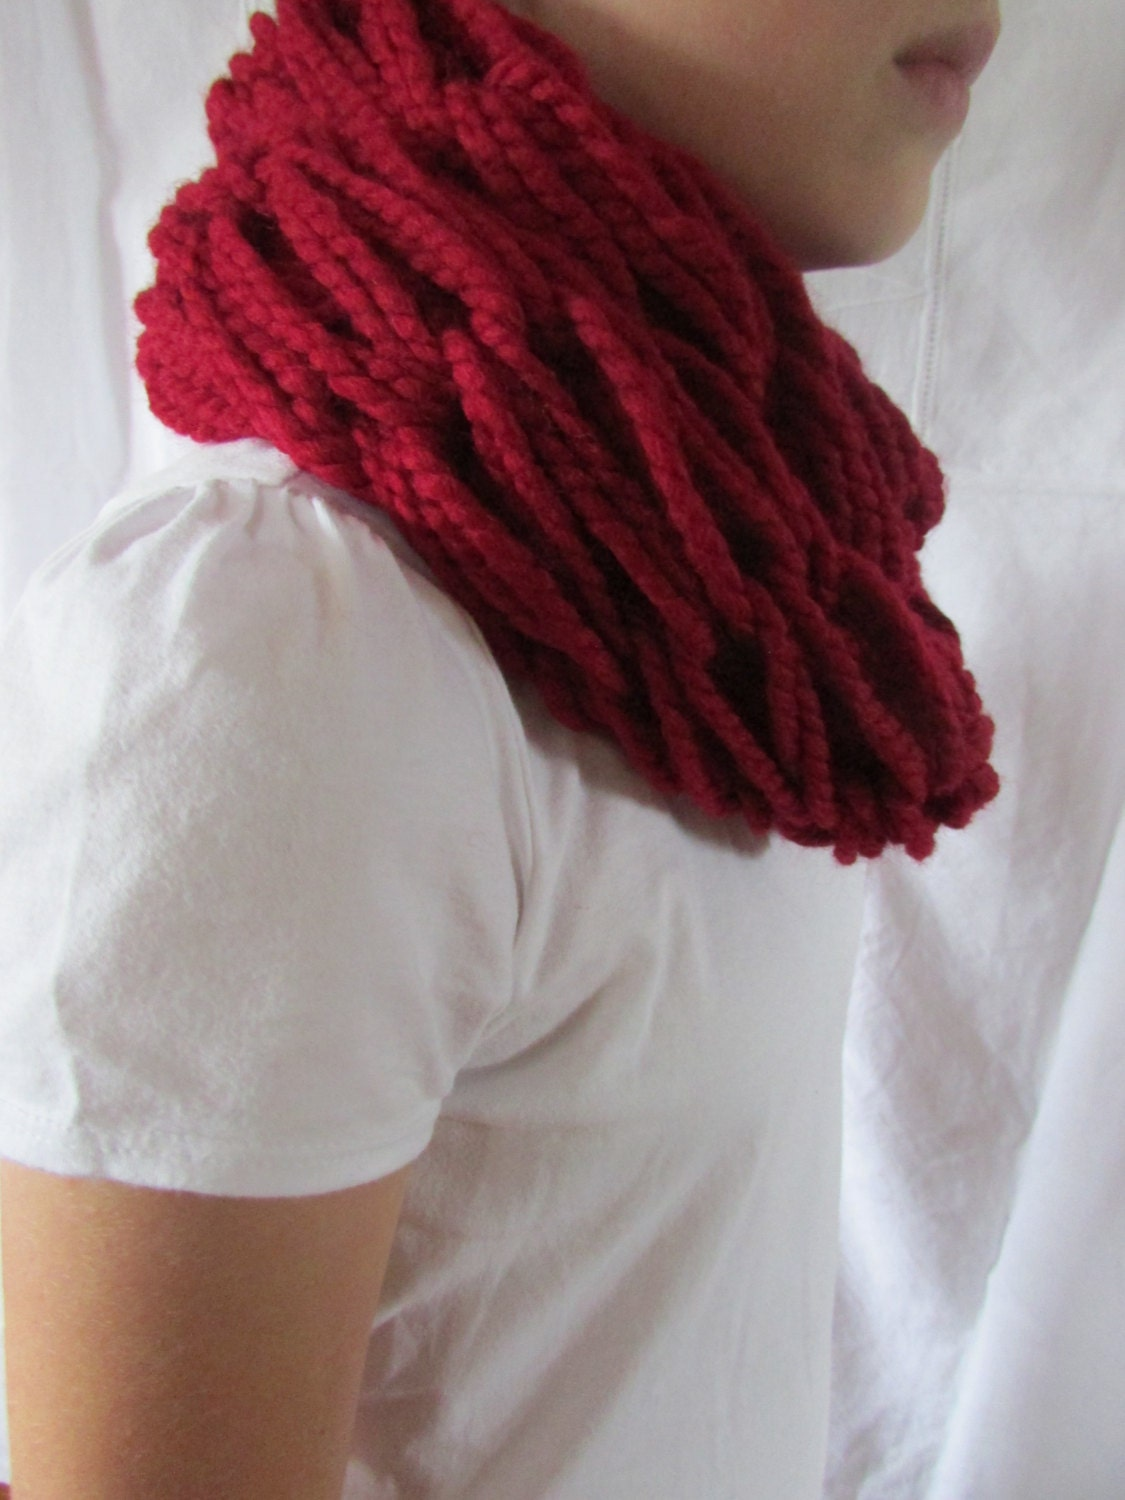 Infinity Scarf Knitting Pattern Super Bulky : Arm knitted Infinity scarf or cowl super bulky infinity scarf